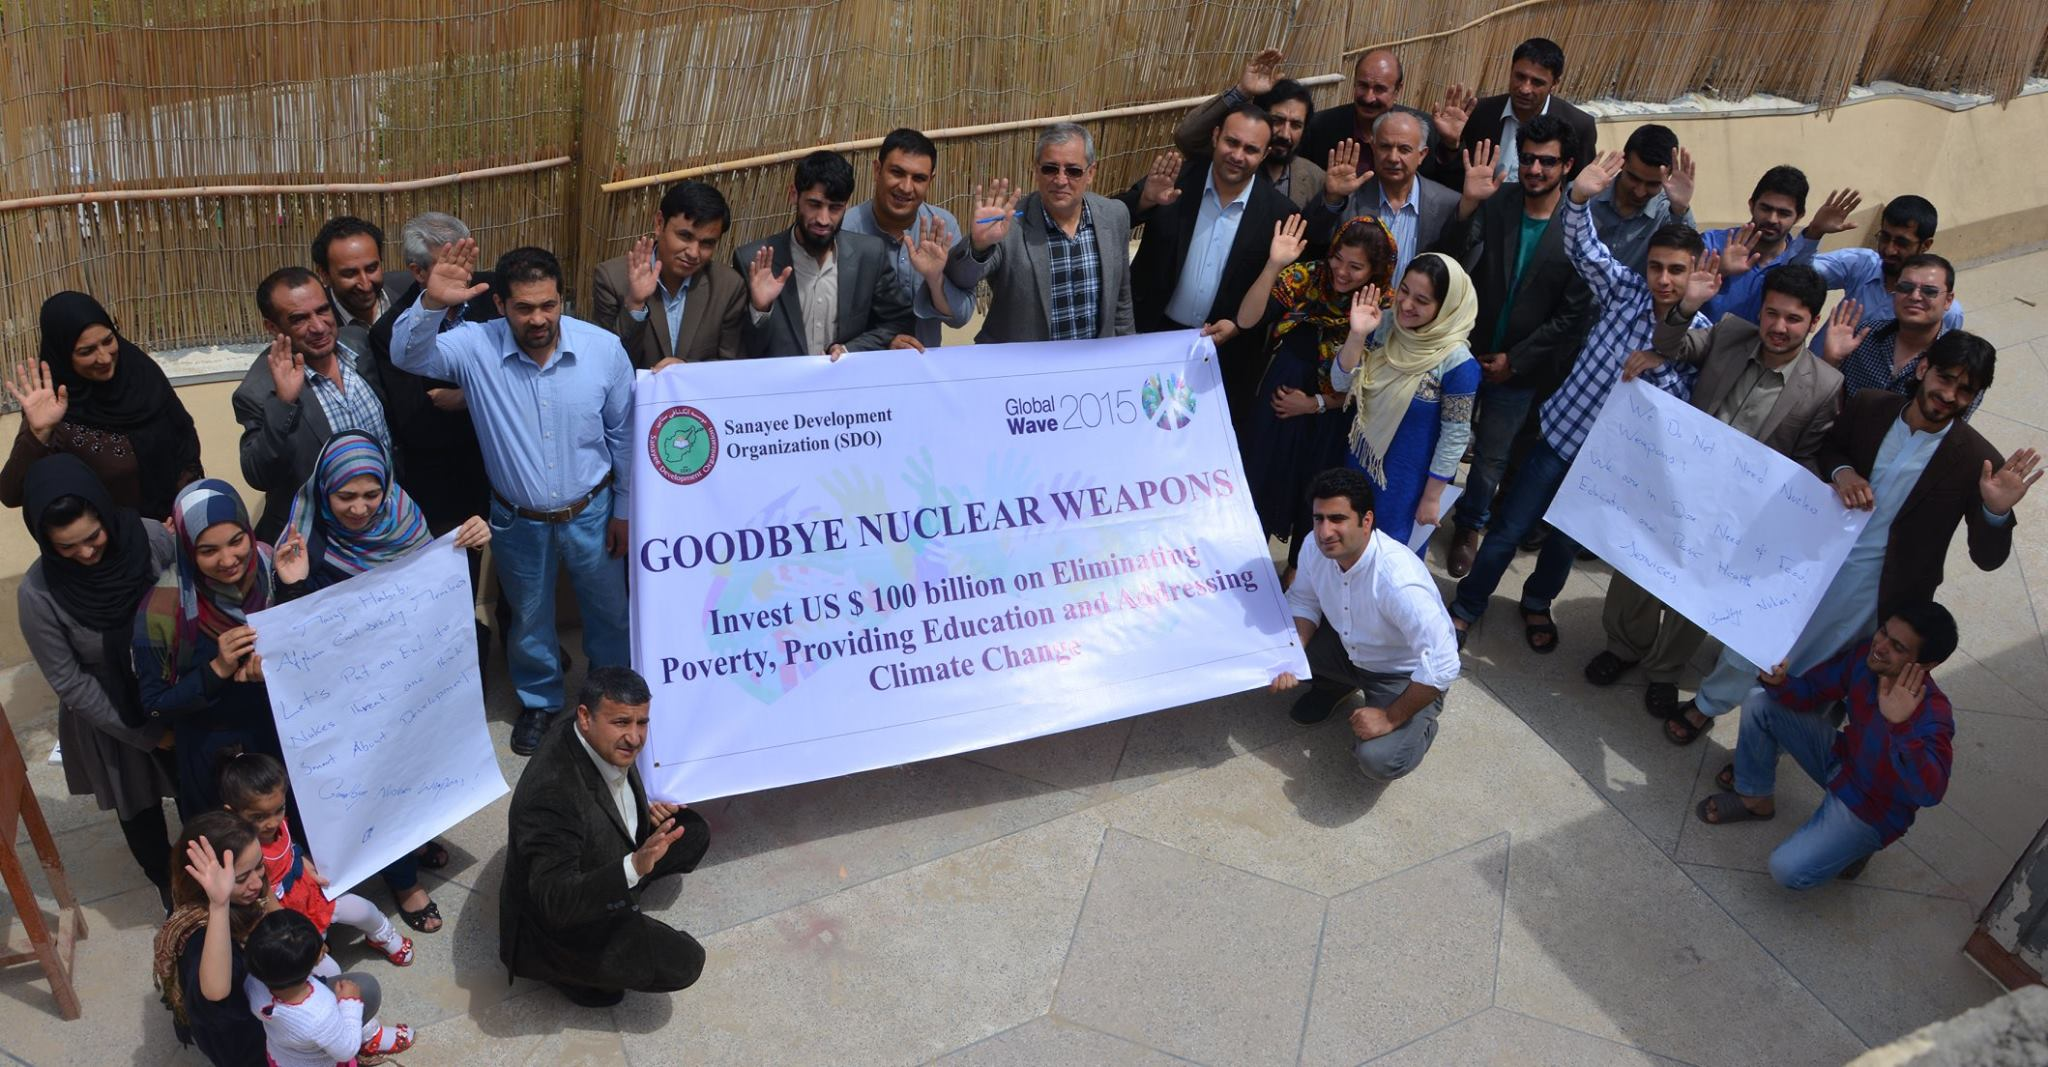 Today Afghan Civil Society Members and Activists Waved Goodbye to Nuclear Weapons in Order to Support    ‪#‎  globalwave2015‬    International Campaign.  Global Wave 2015